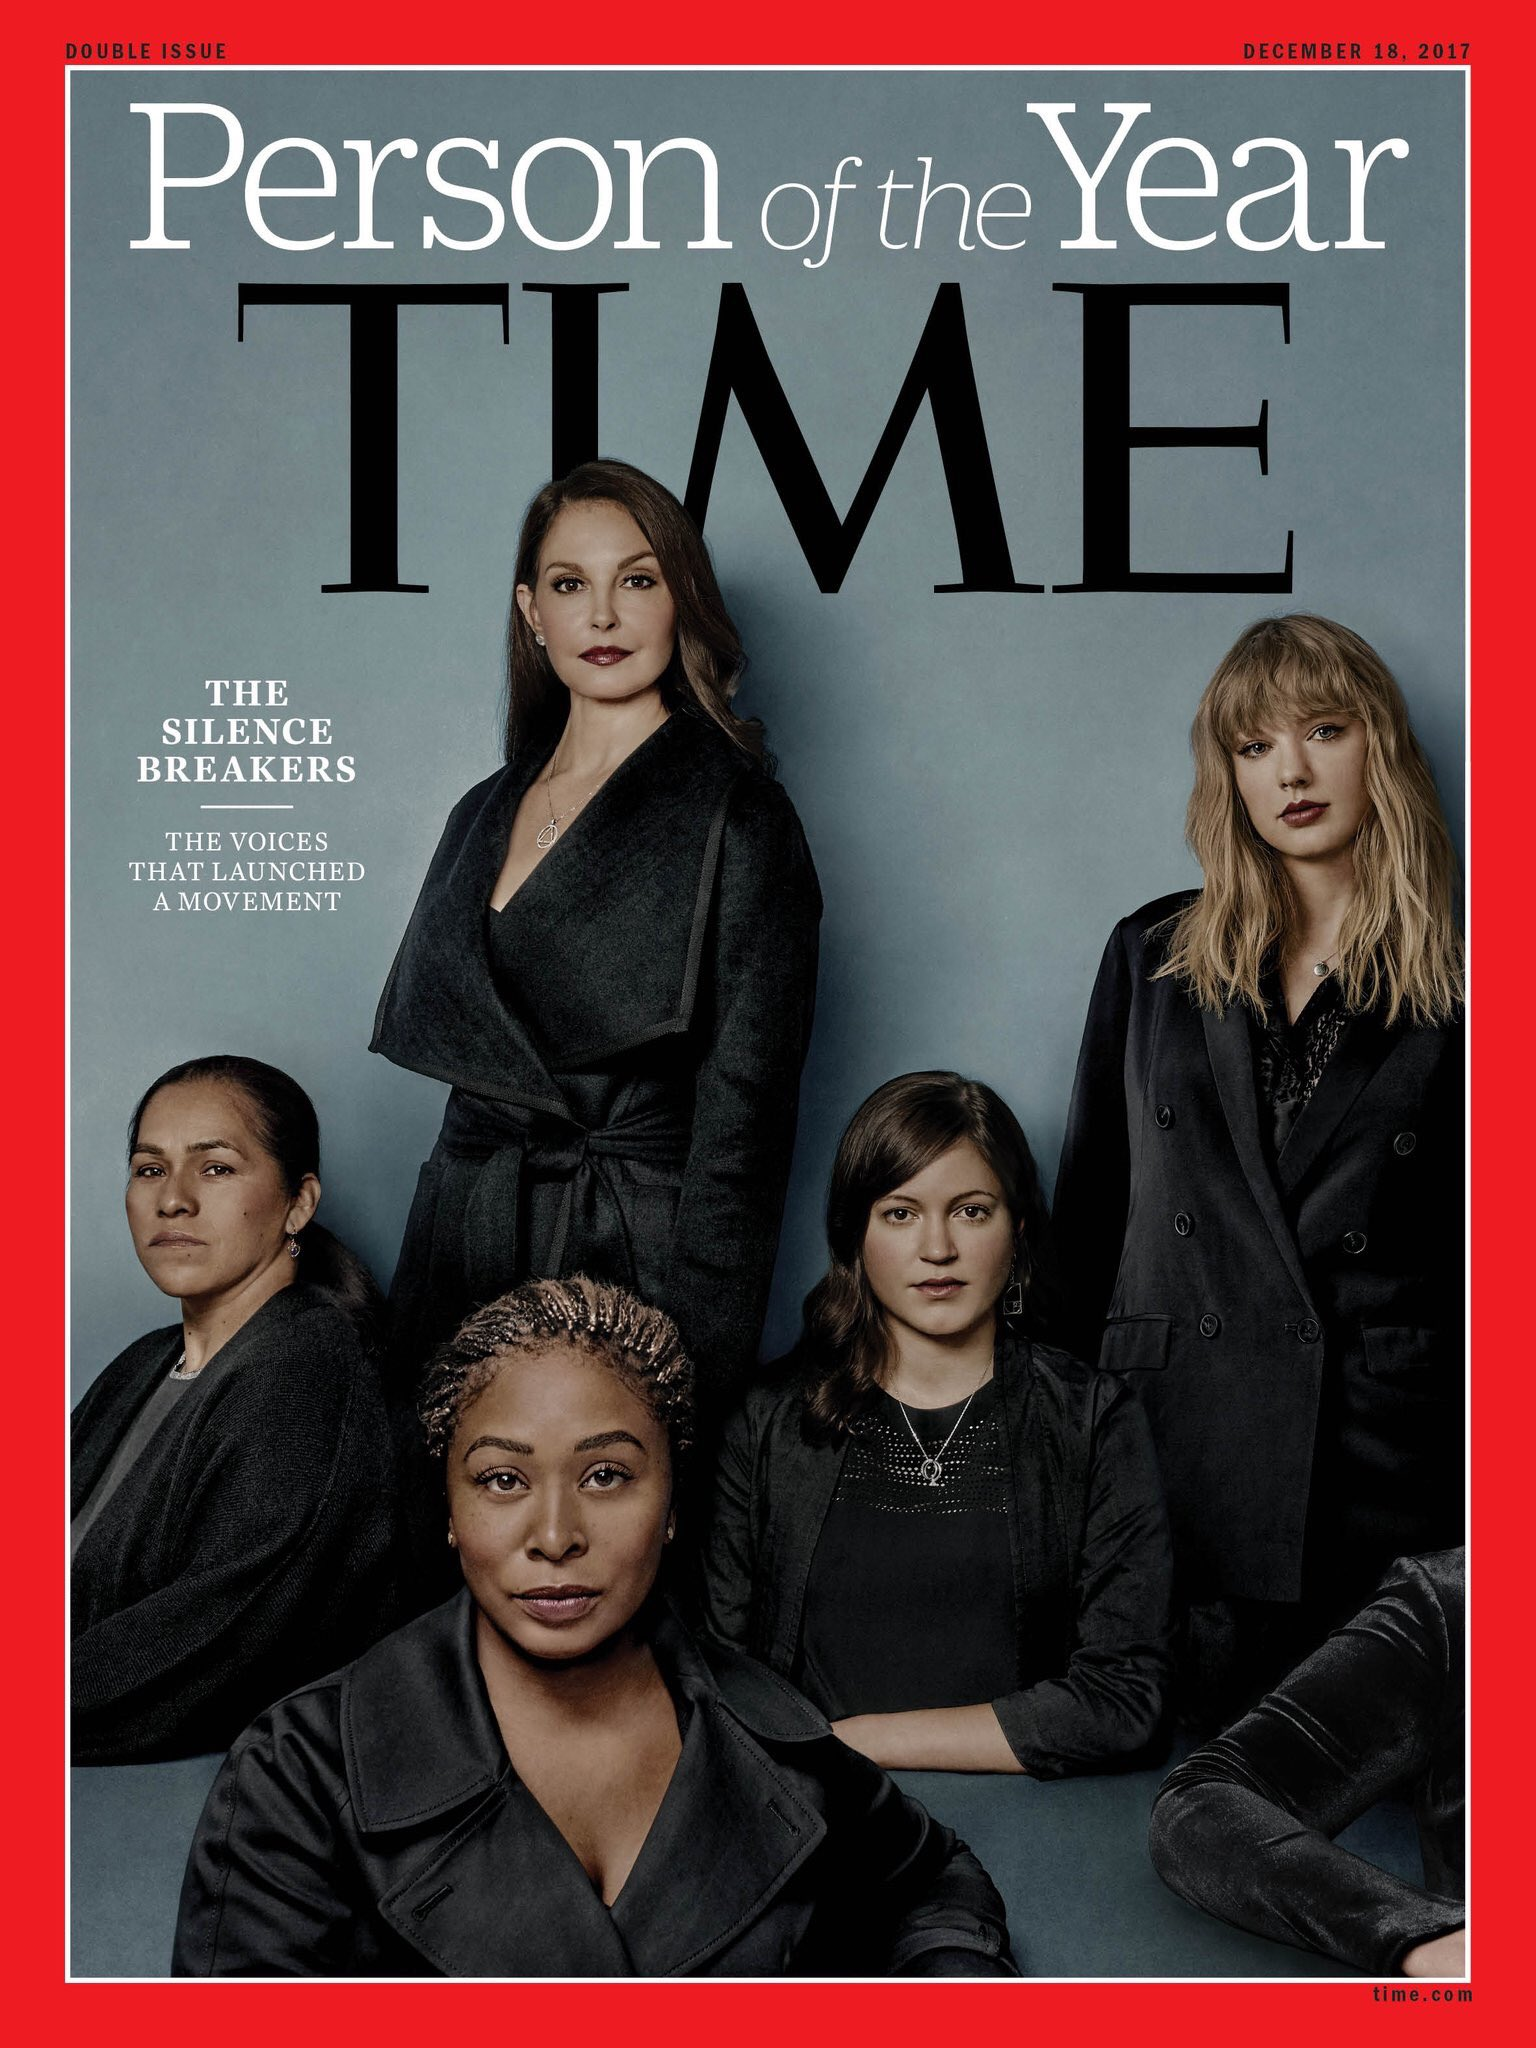 """Time magazine's Person of the Year: """"The Silence Breakers"""" https://t.co/dbGyQpJ19C"""